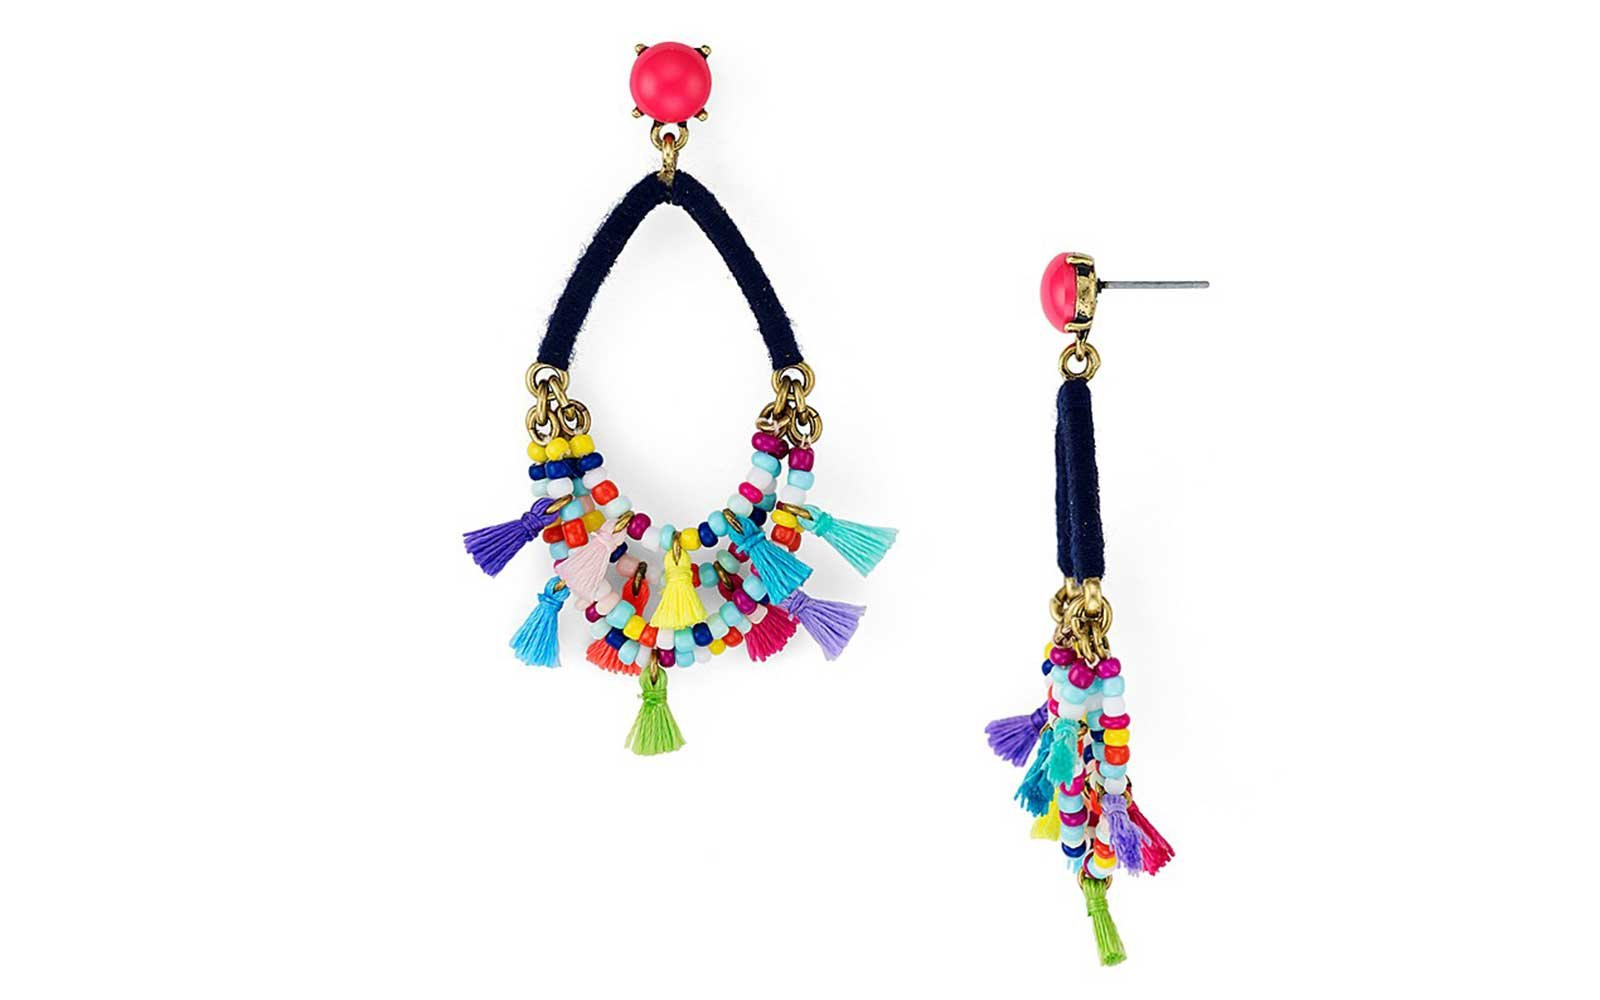 045523759a1362 Baublebar Merengue Tassel Drop Earrings. Baublebar Summer Statement Earrings